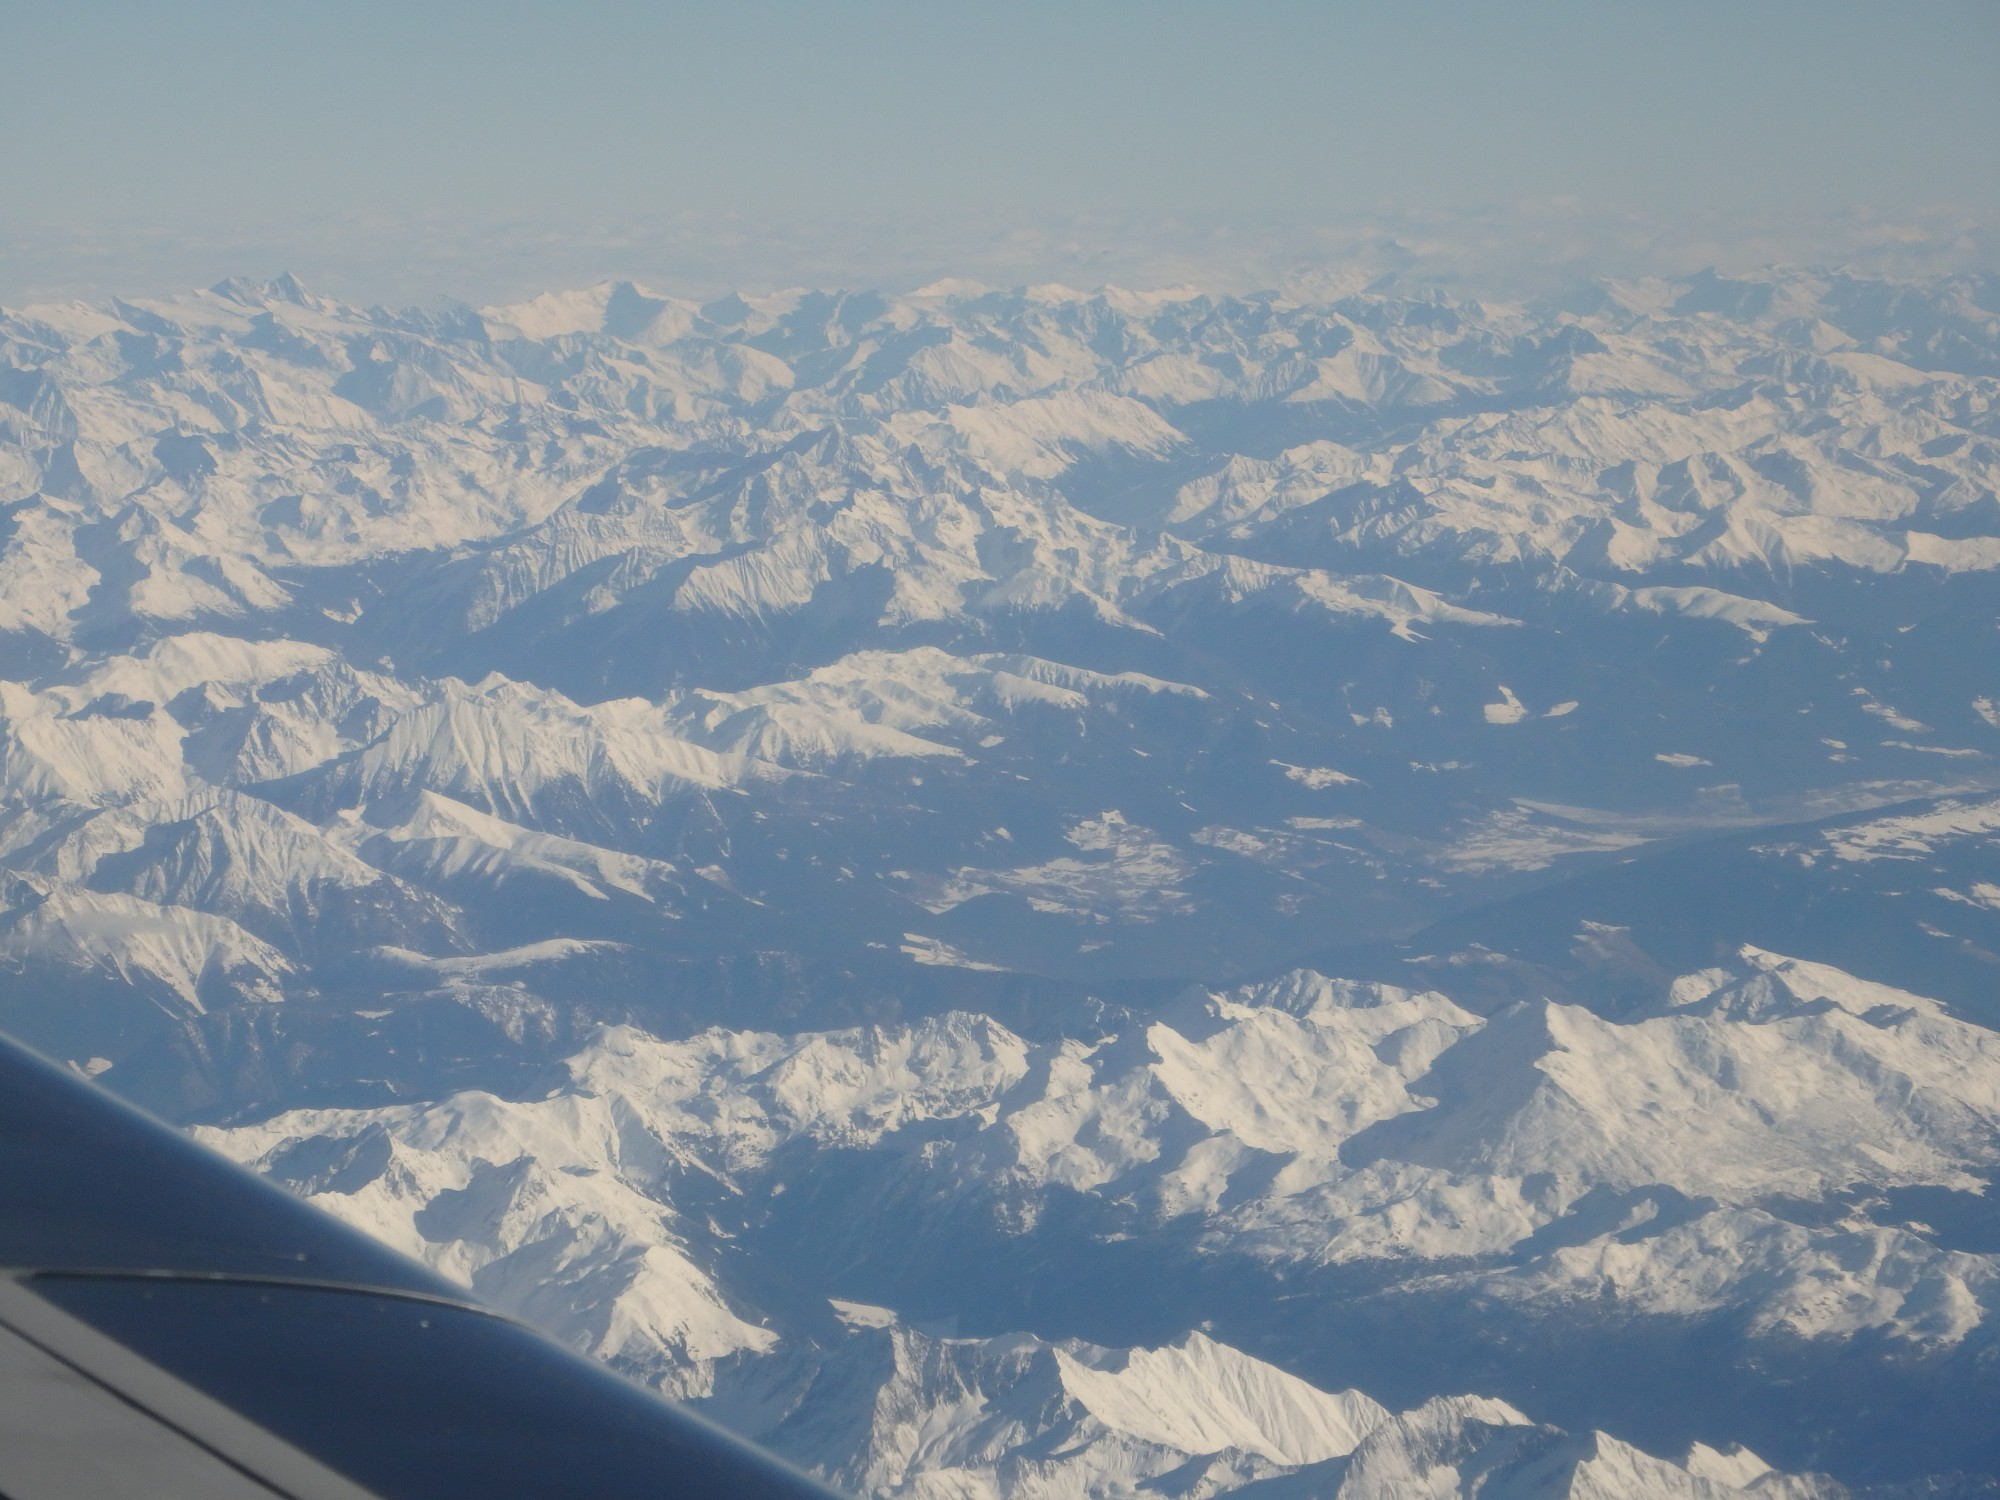 a view of the Italian Alps. The flight time that our pilot spends here would not count as US-earned.